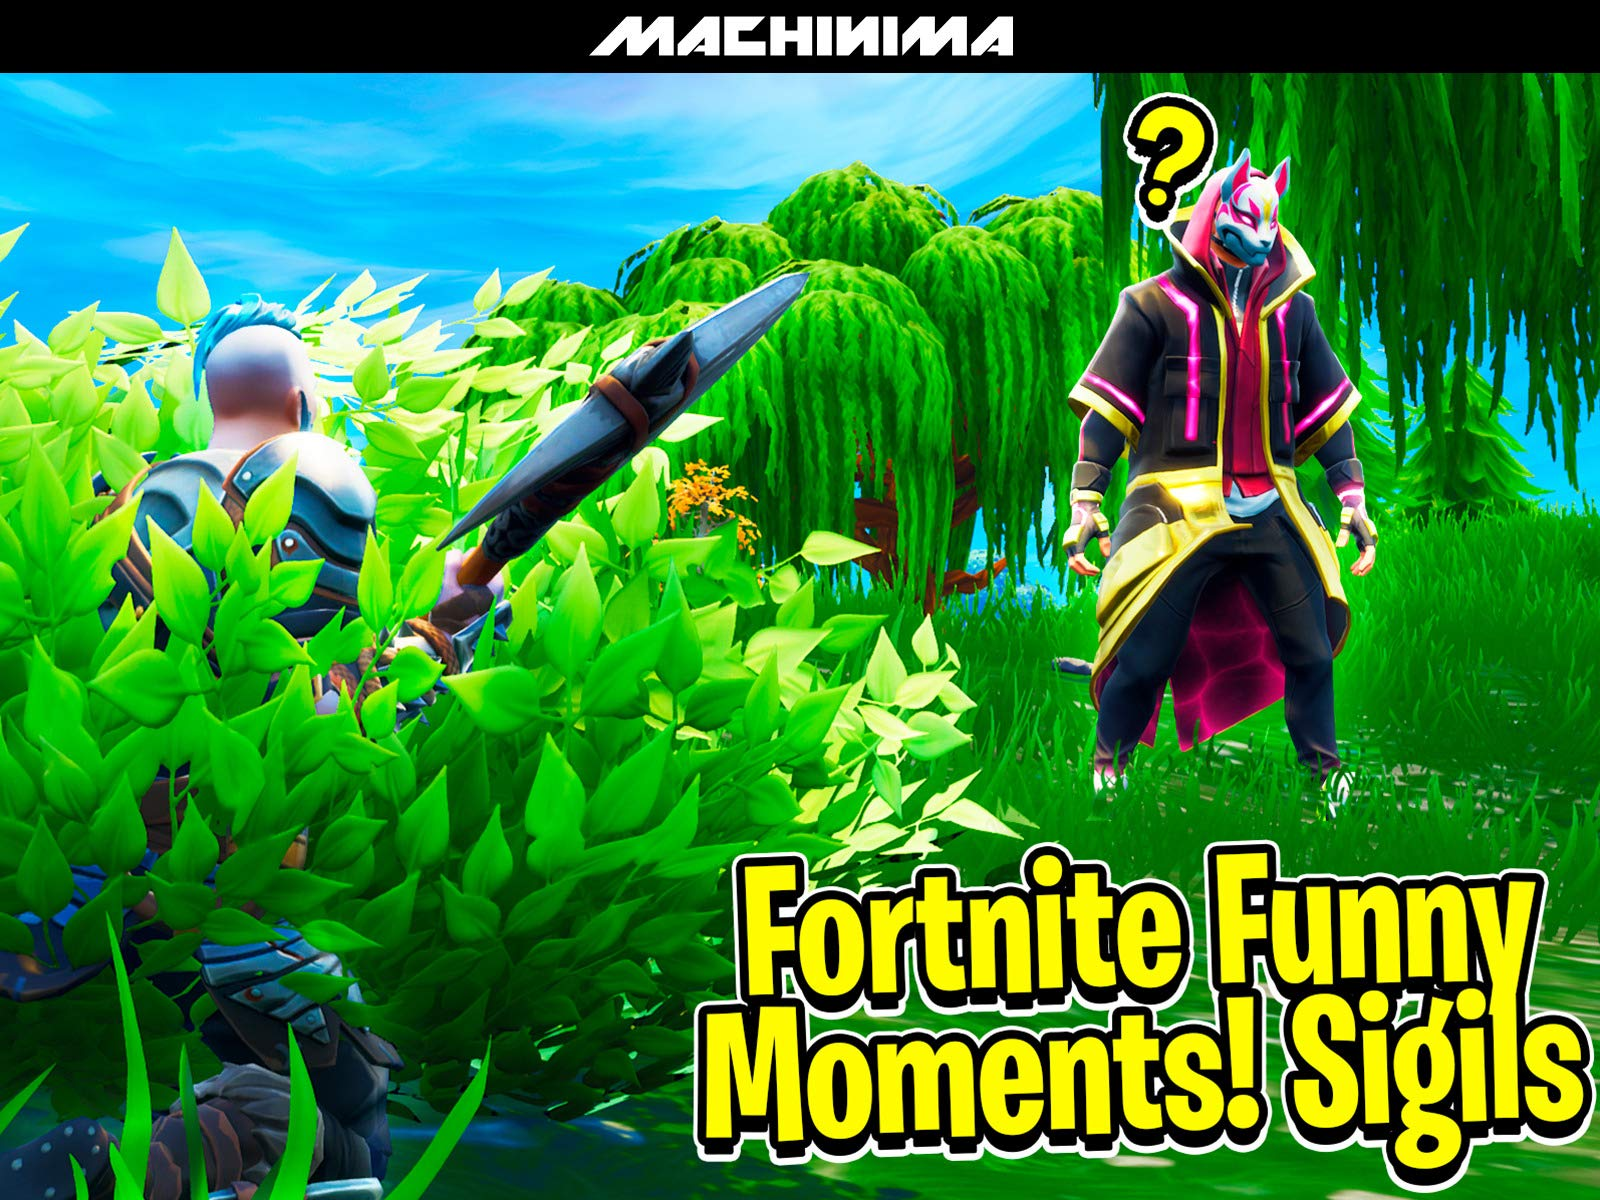 Clip: Fortnite Funny Moments (Sigils) - Season 1